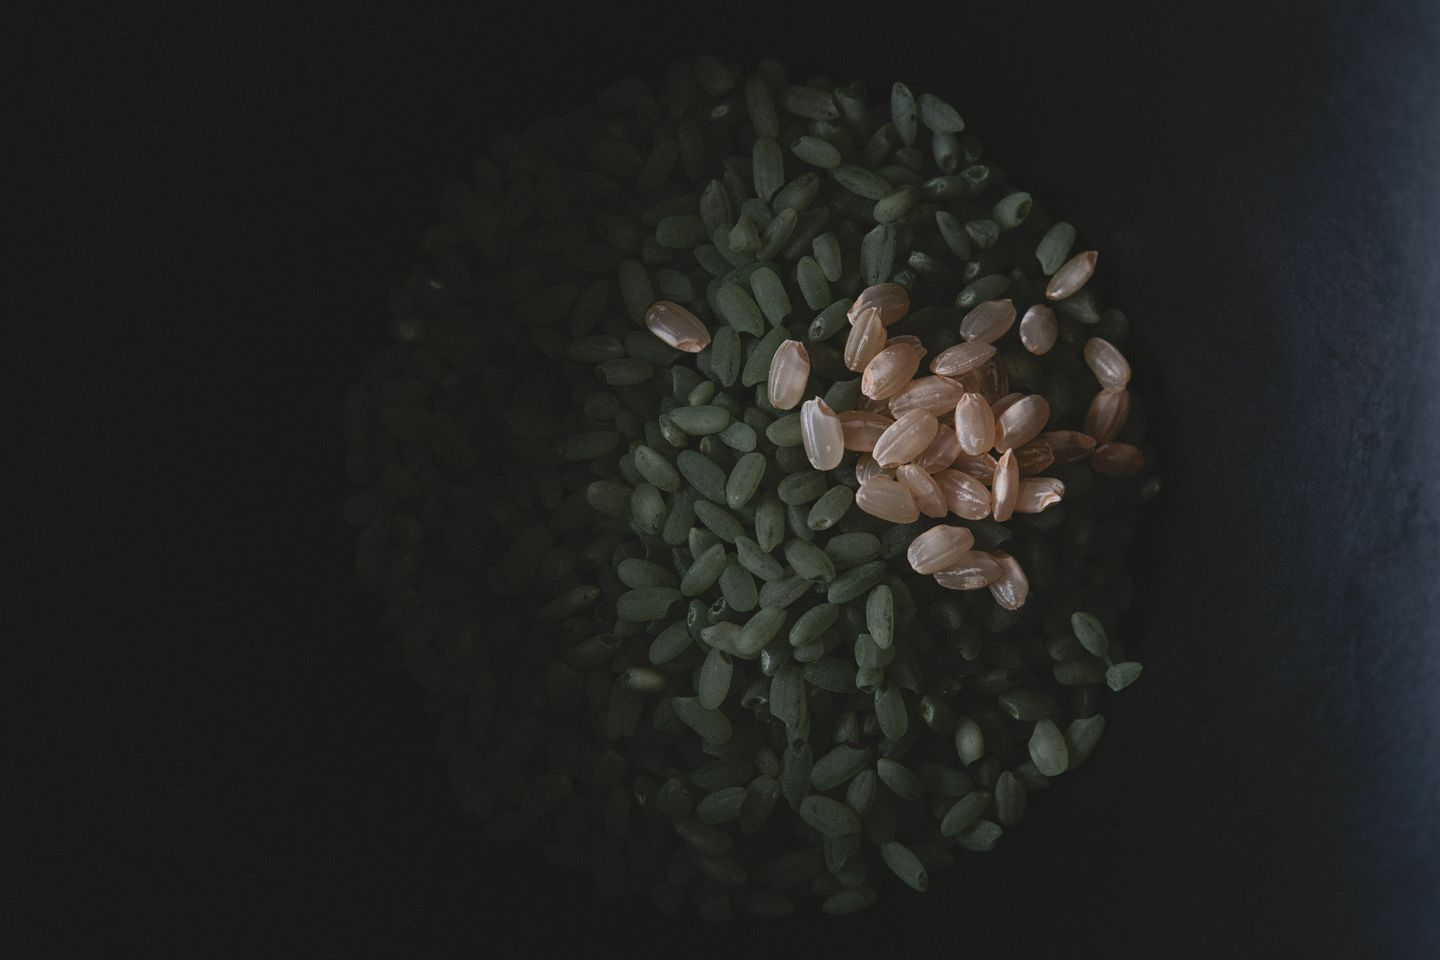 Still life of bowl of uncooked green bamboo rice with brown rice